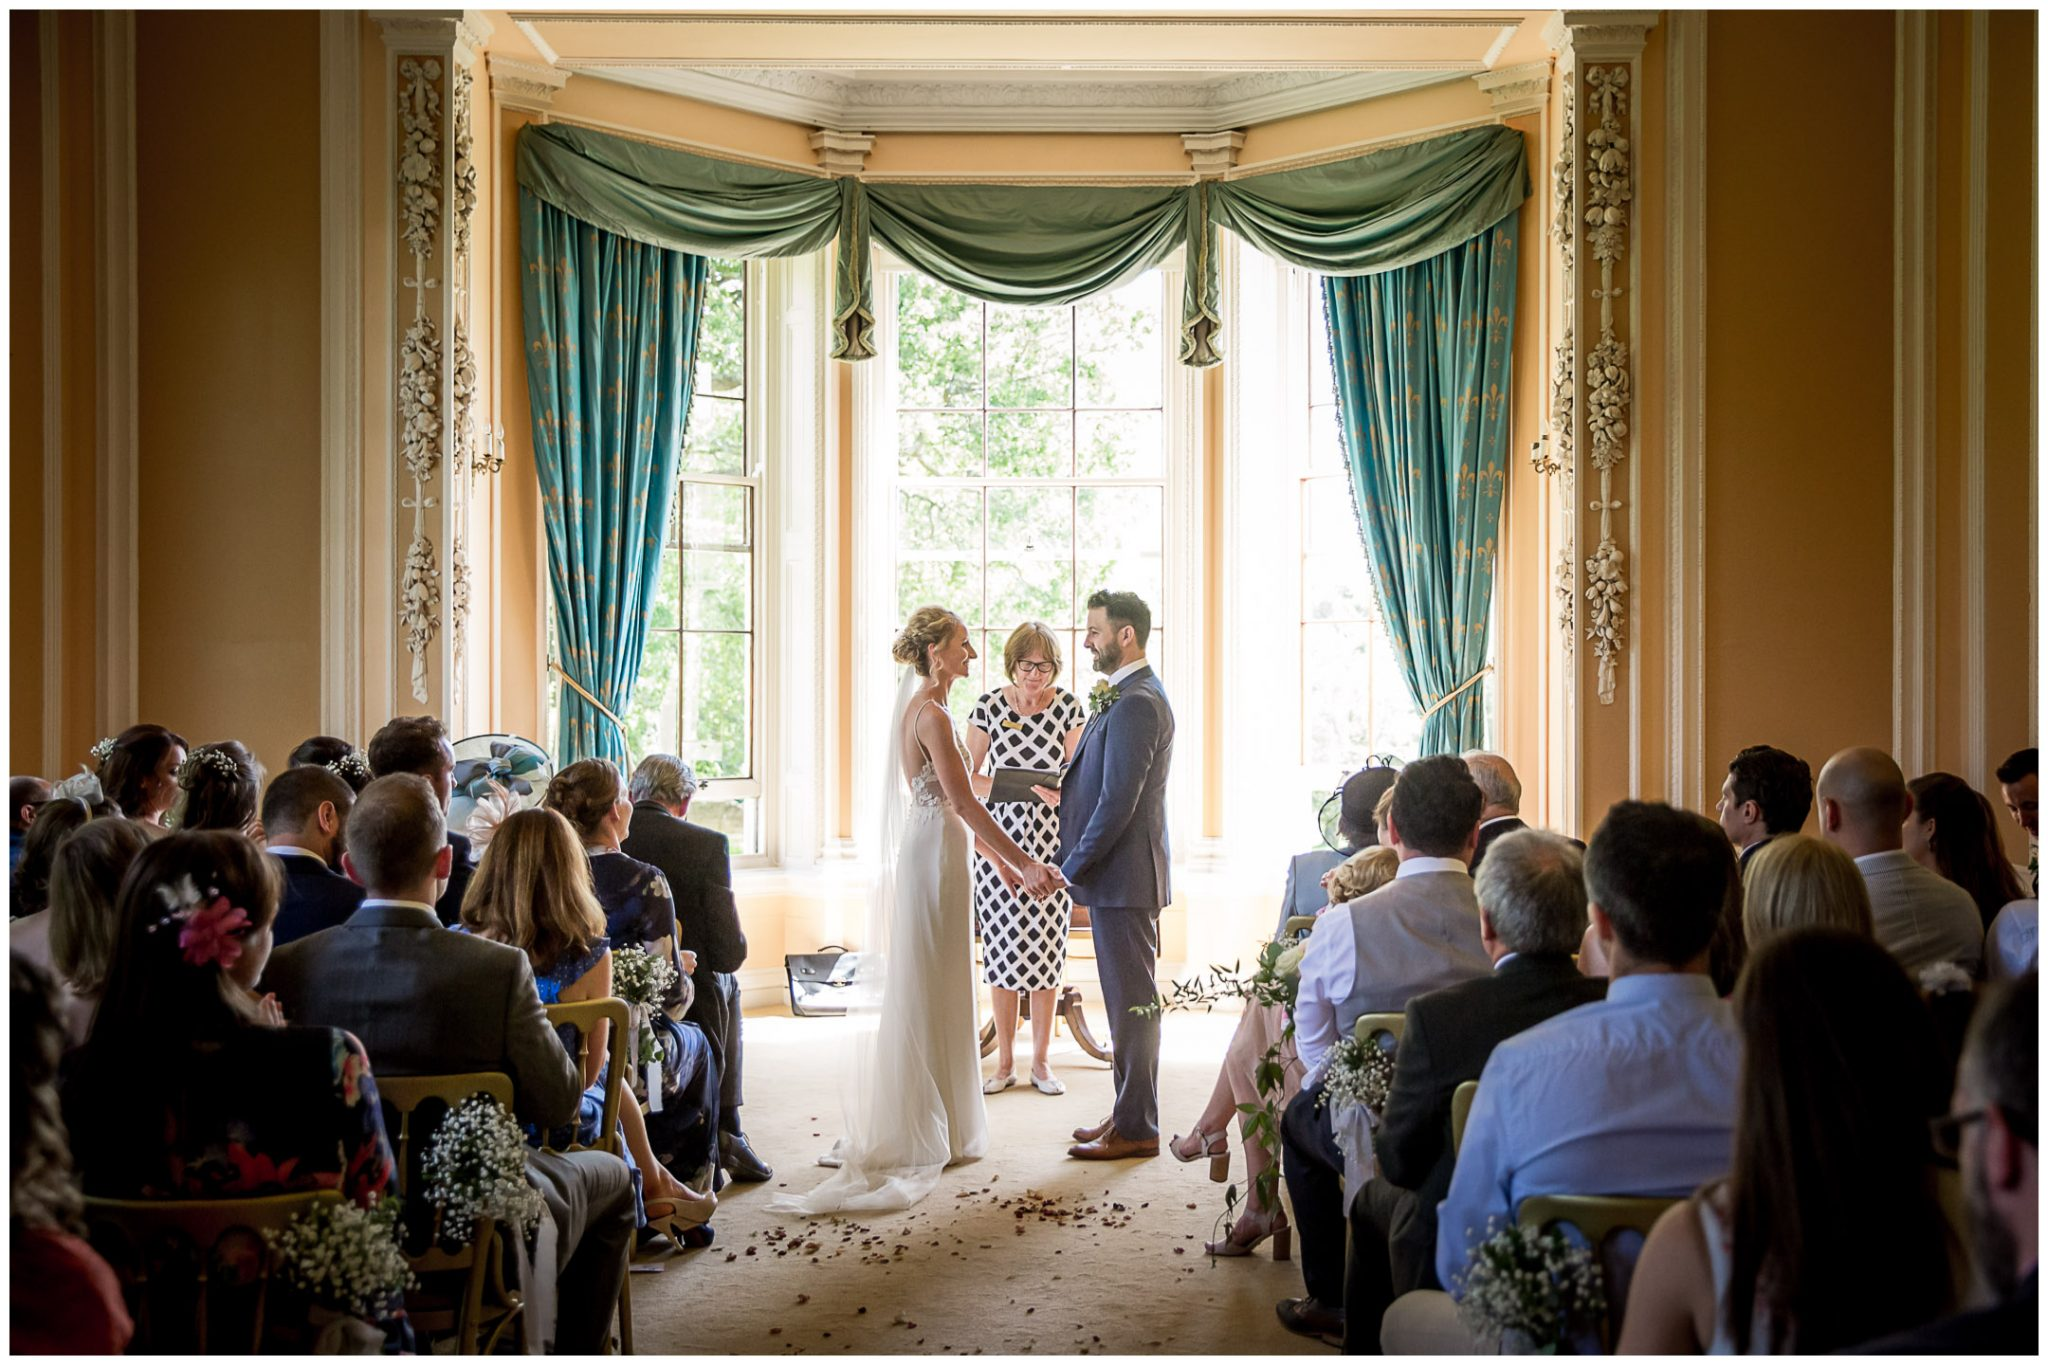 The couple turn to face each other in front of the big bay window of the ceremony room at Newhouse Estate New Forest wedding venue